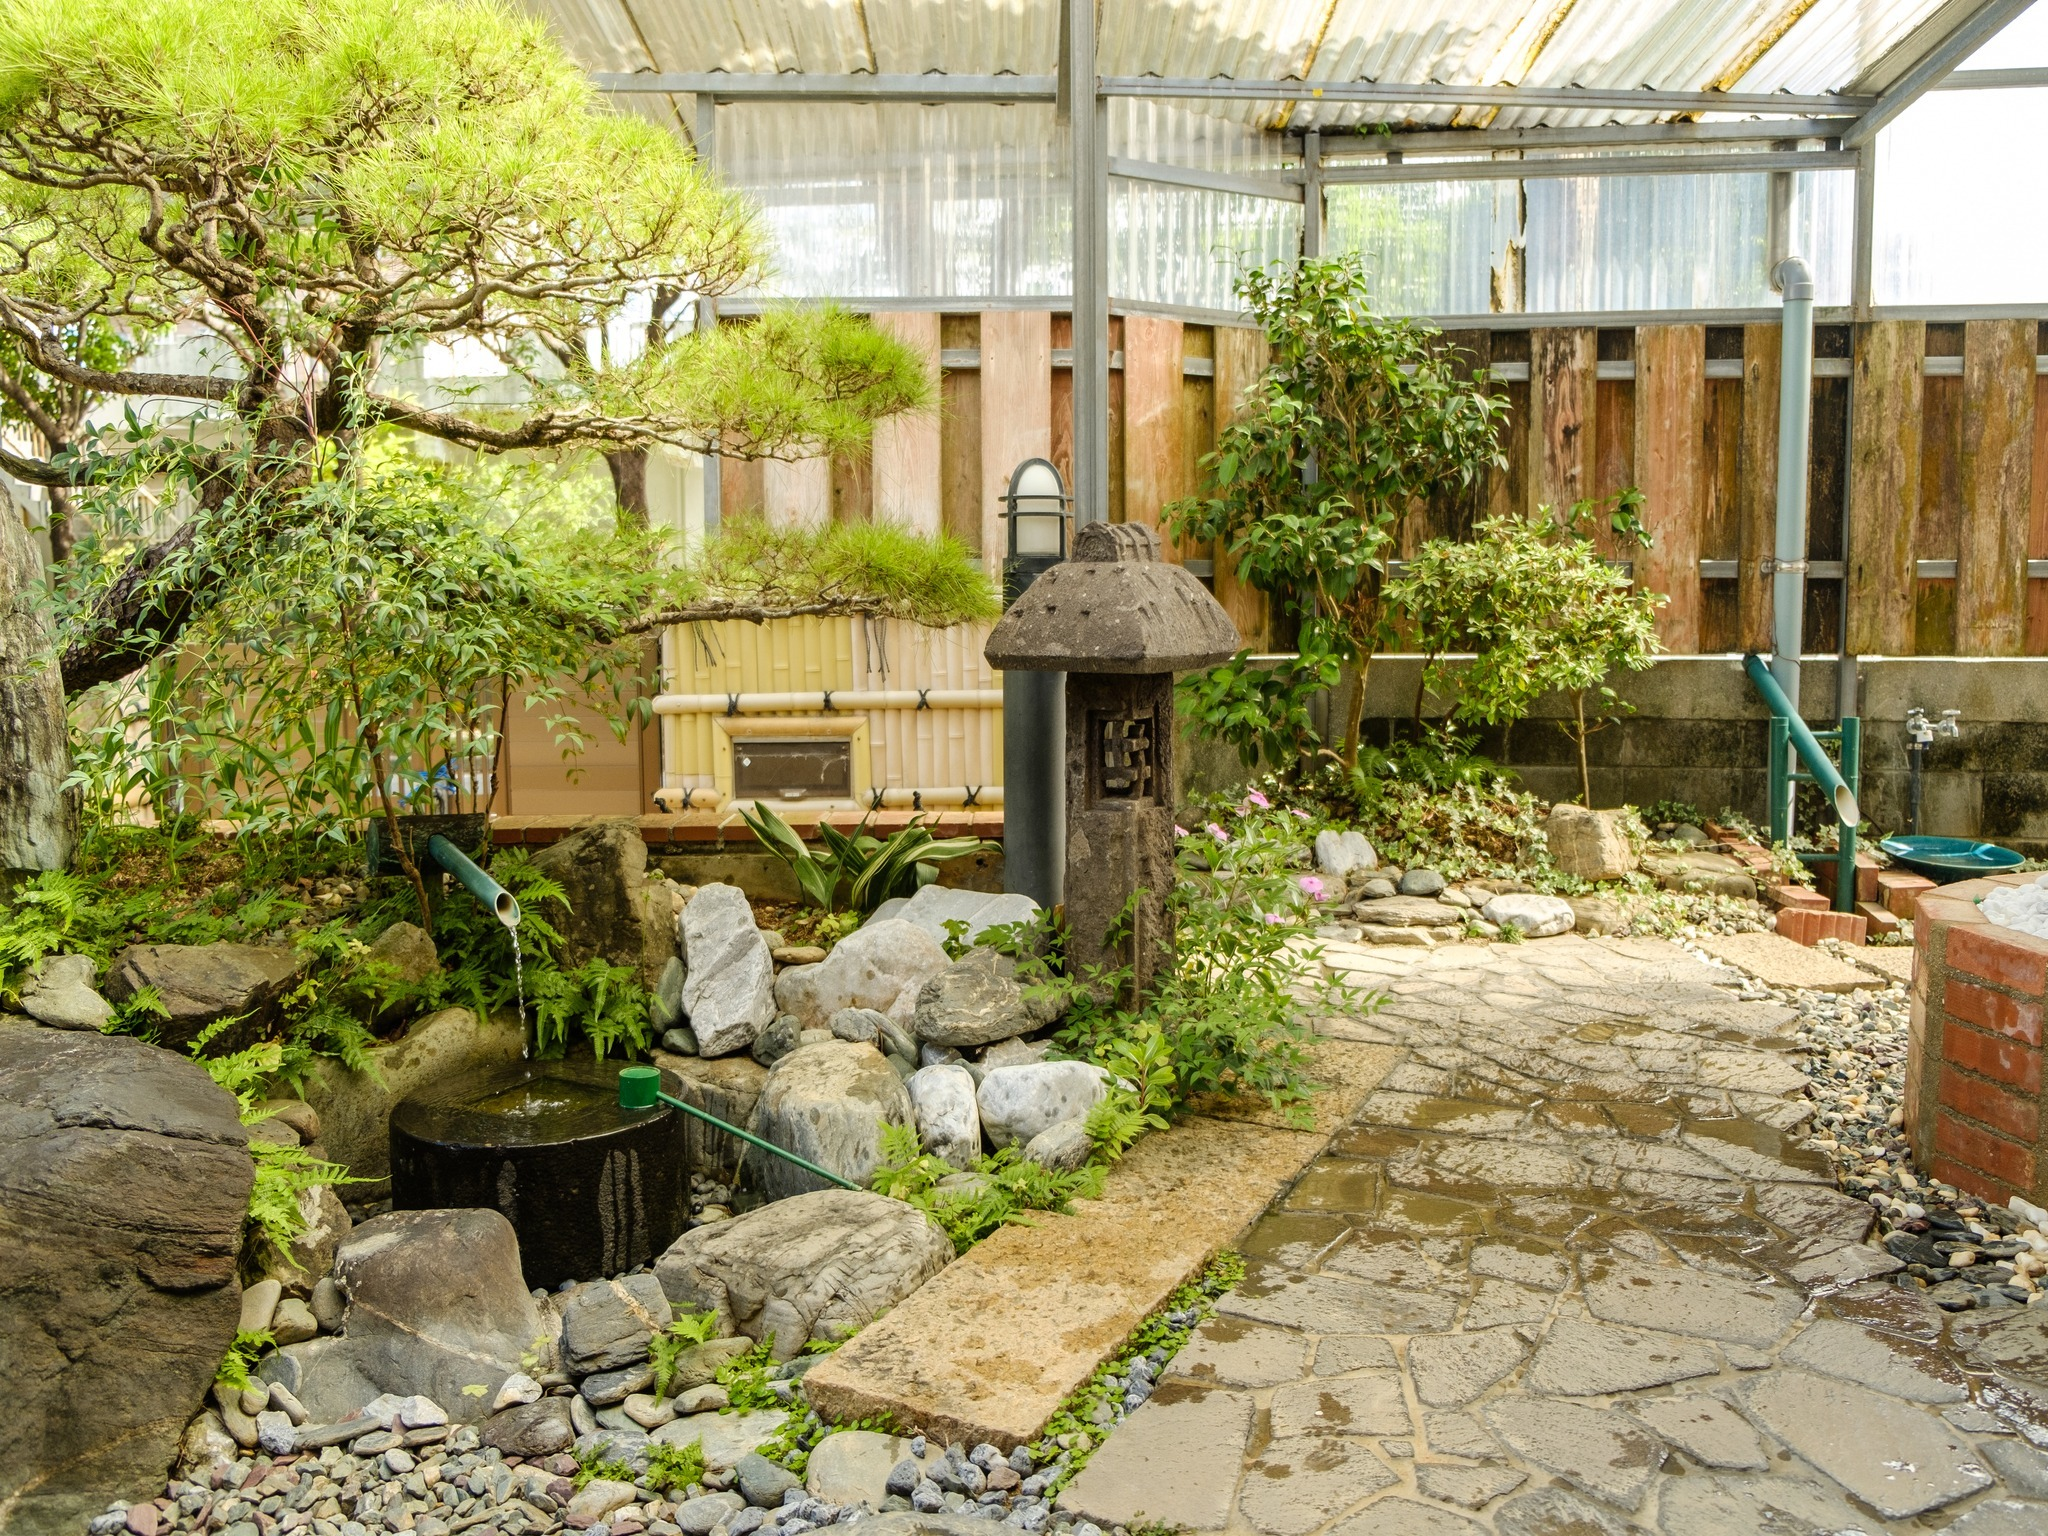 We hope you will enjoy the view of the Japanese‐style garden, which has become scarce in modern times. / 現代では少なくなってしまった日本ならではお庭の景色を是非お楽しみください、